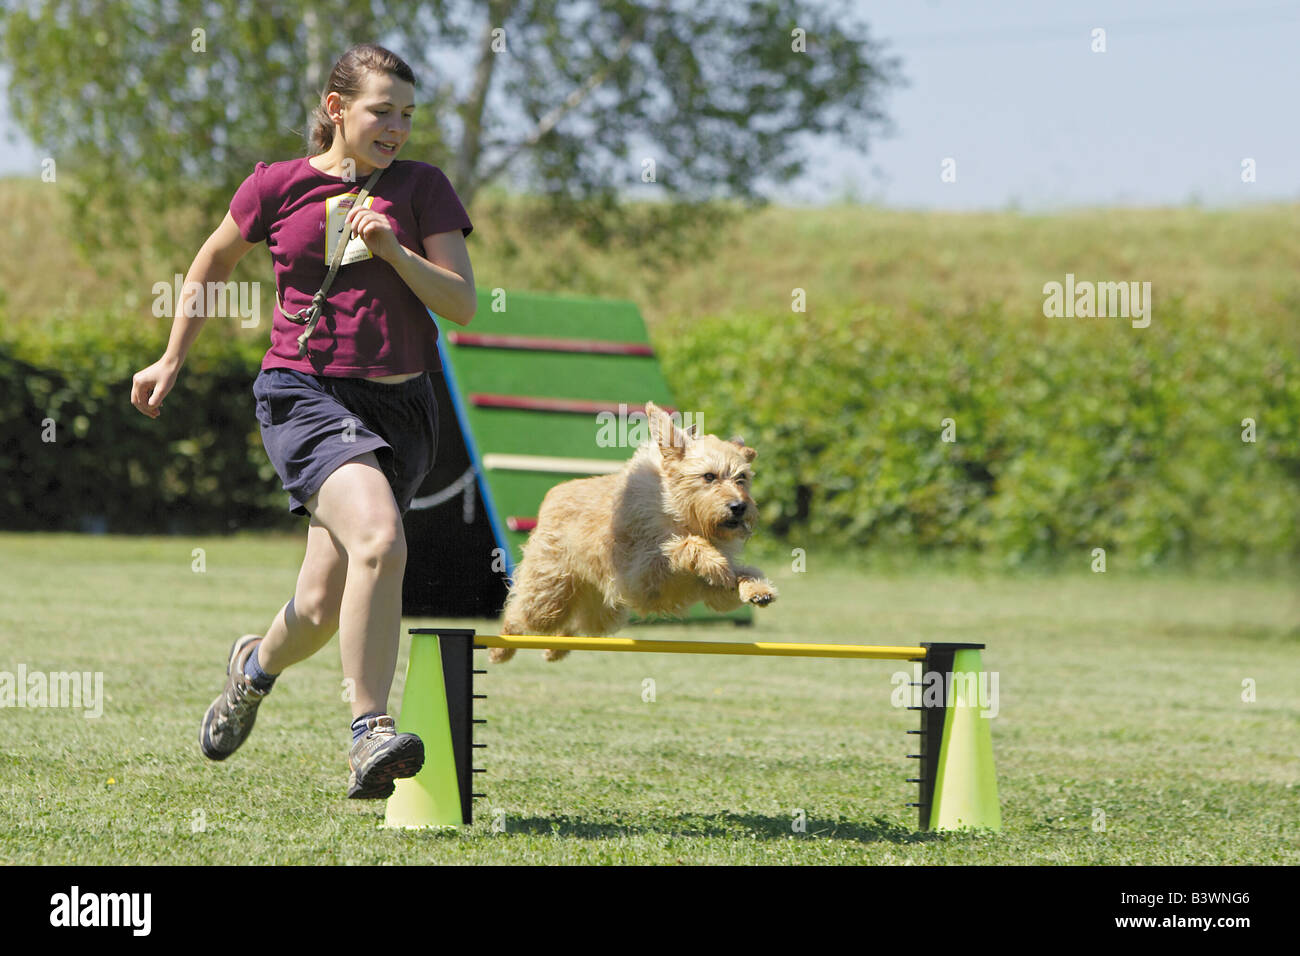 Agility: Mixed-breed dog and woman in an agility parcour - Stock Image